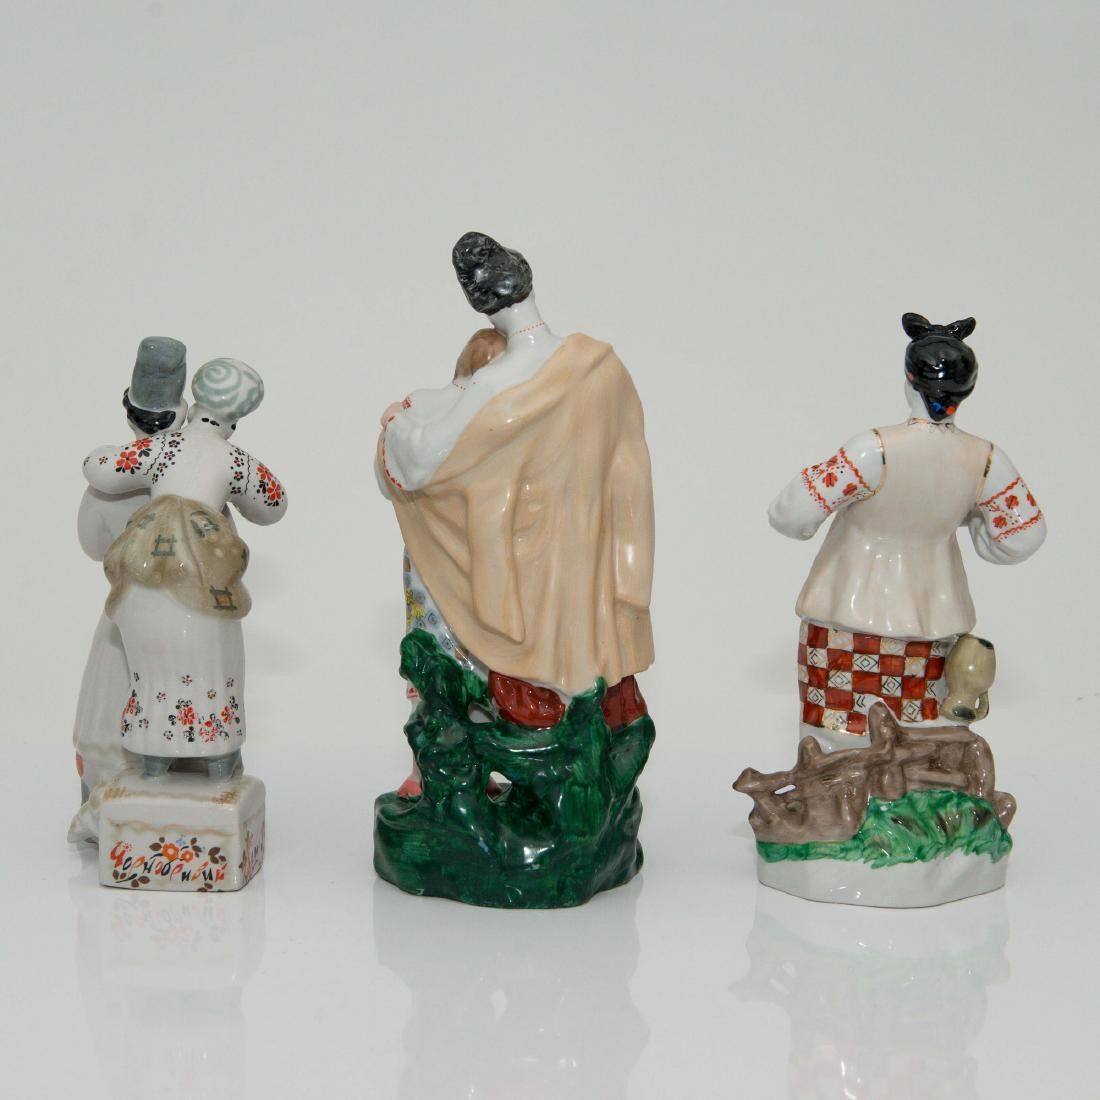 GROUP OF 3 SOVIET UNION PORCELAIN FIGURINES - 2